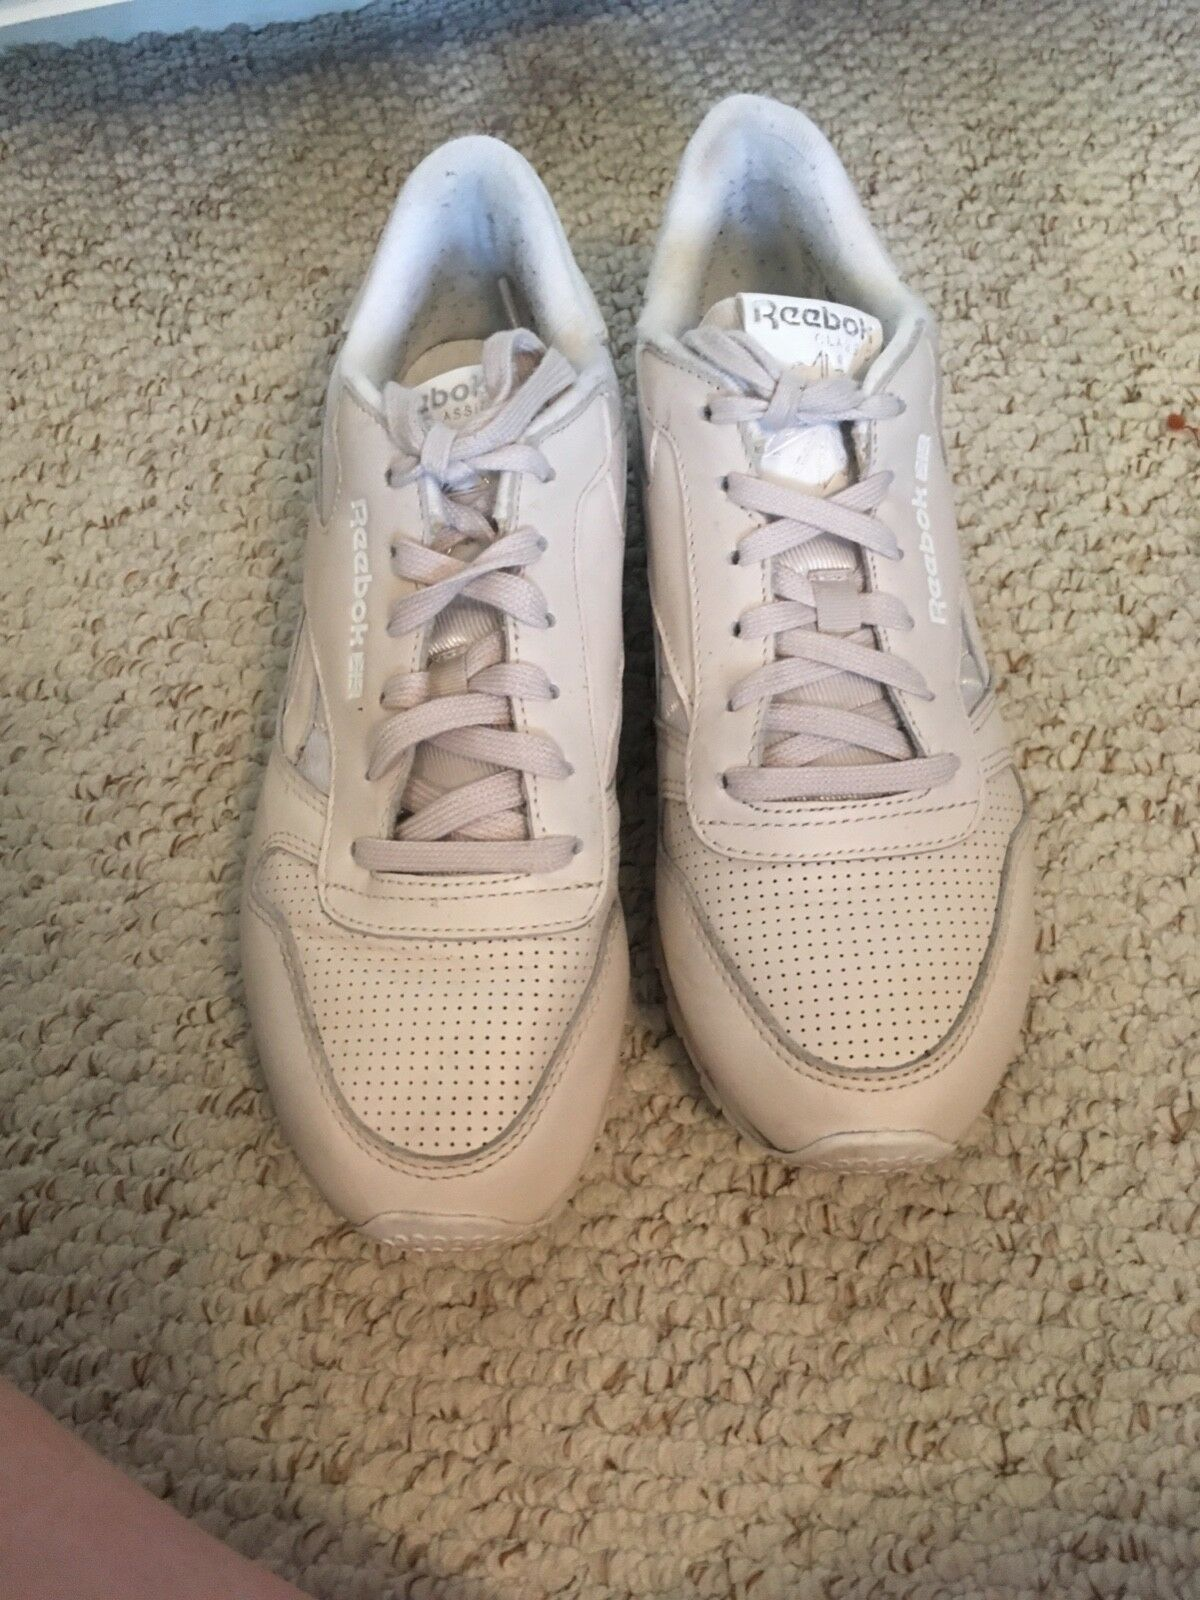 Reebok classic size 5 trainers great condition, barely worn, very pale pink